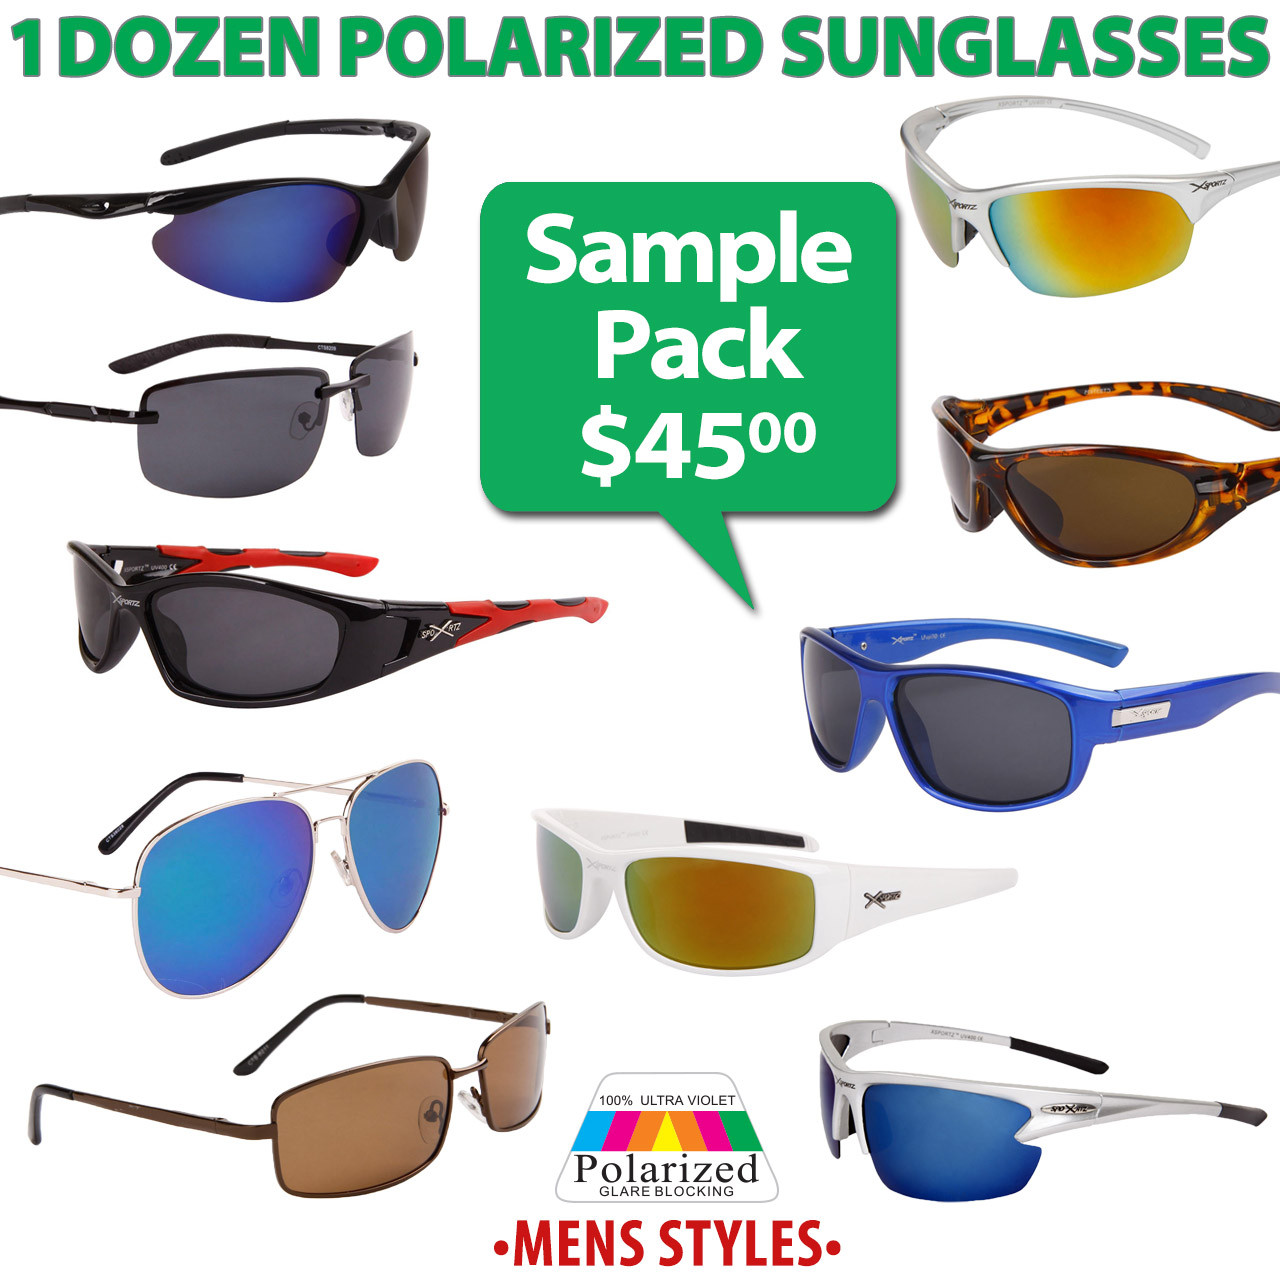 1 Dozen Sample Pack Polarized Sunglasses - Men's Styles